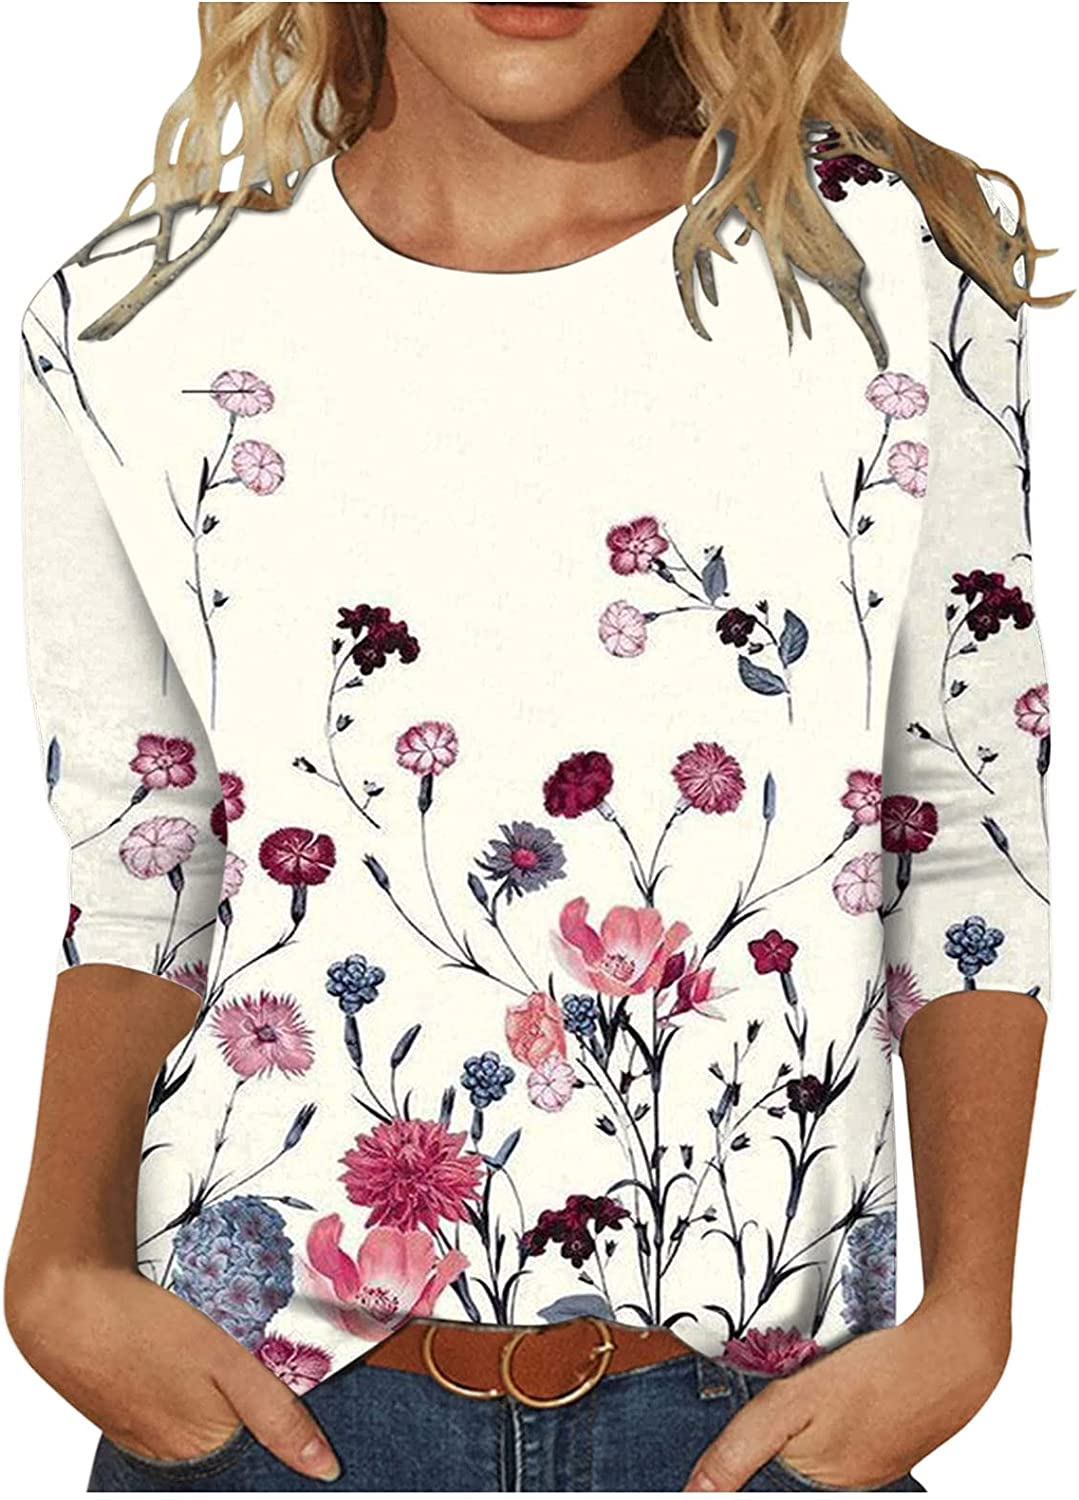 Floral Graphic Tops for Women, Fall Clothes Classic V-Neck Long Sleeve Casual Sweatshirts Pullover